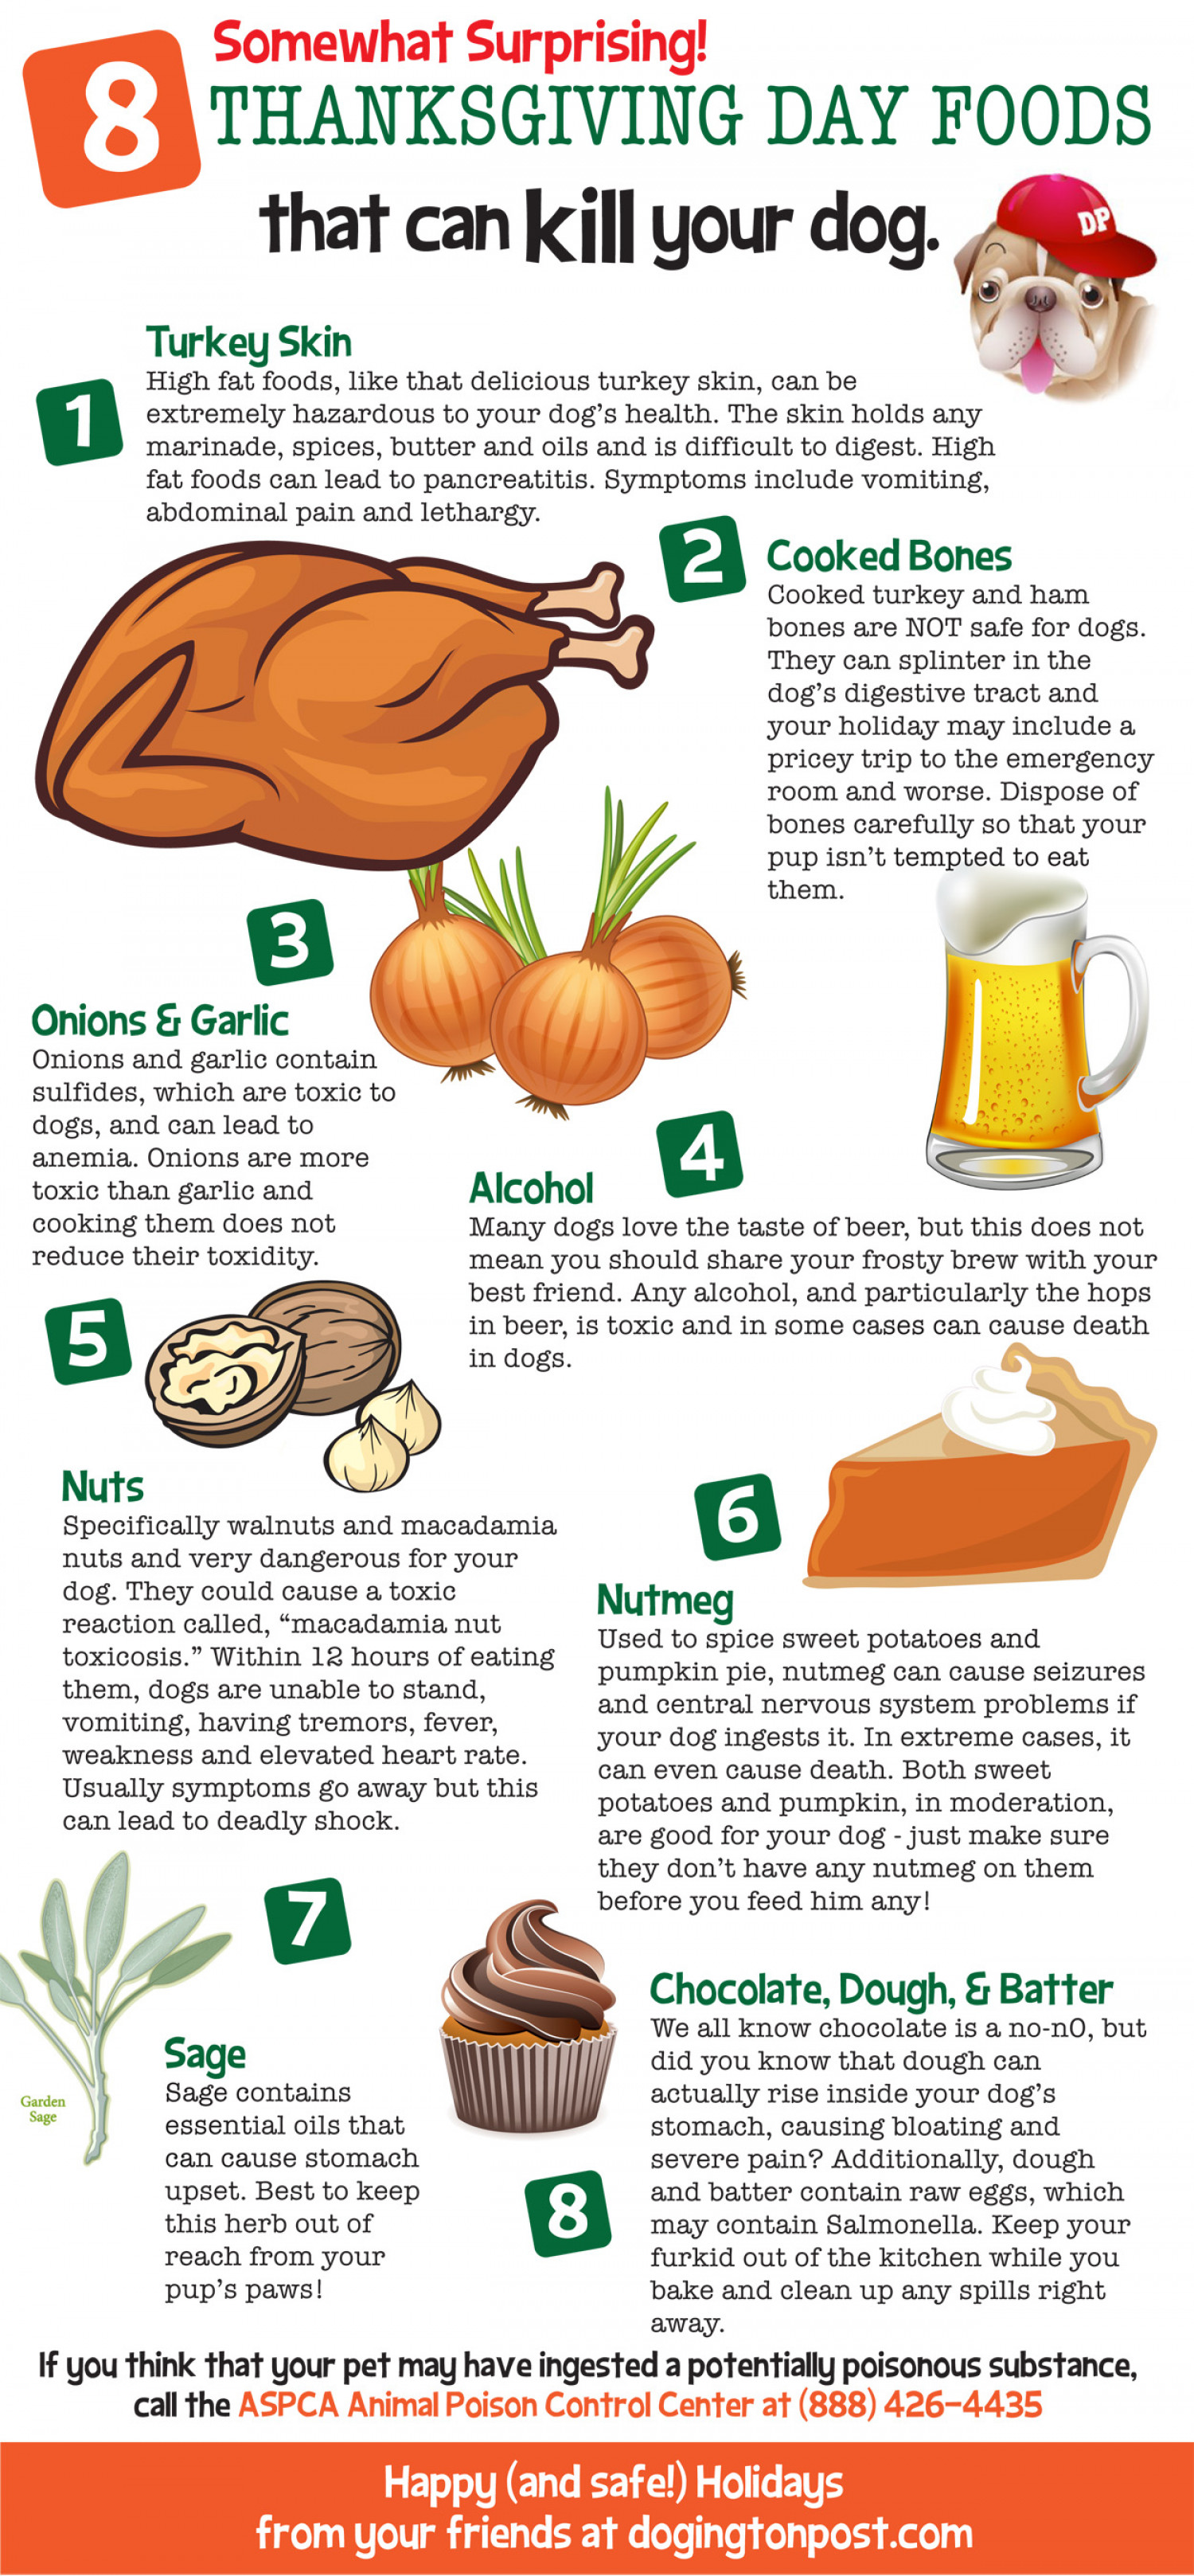 8 Thanksgiving Day Foods That Can Kill your Dog Infographic